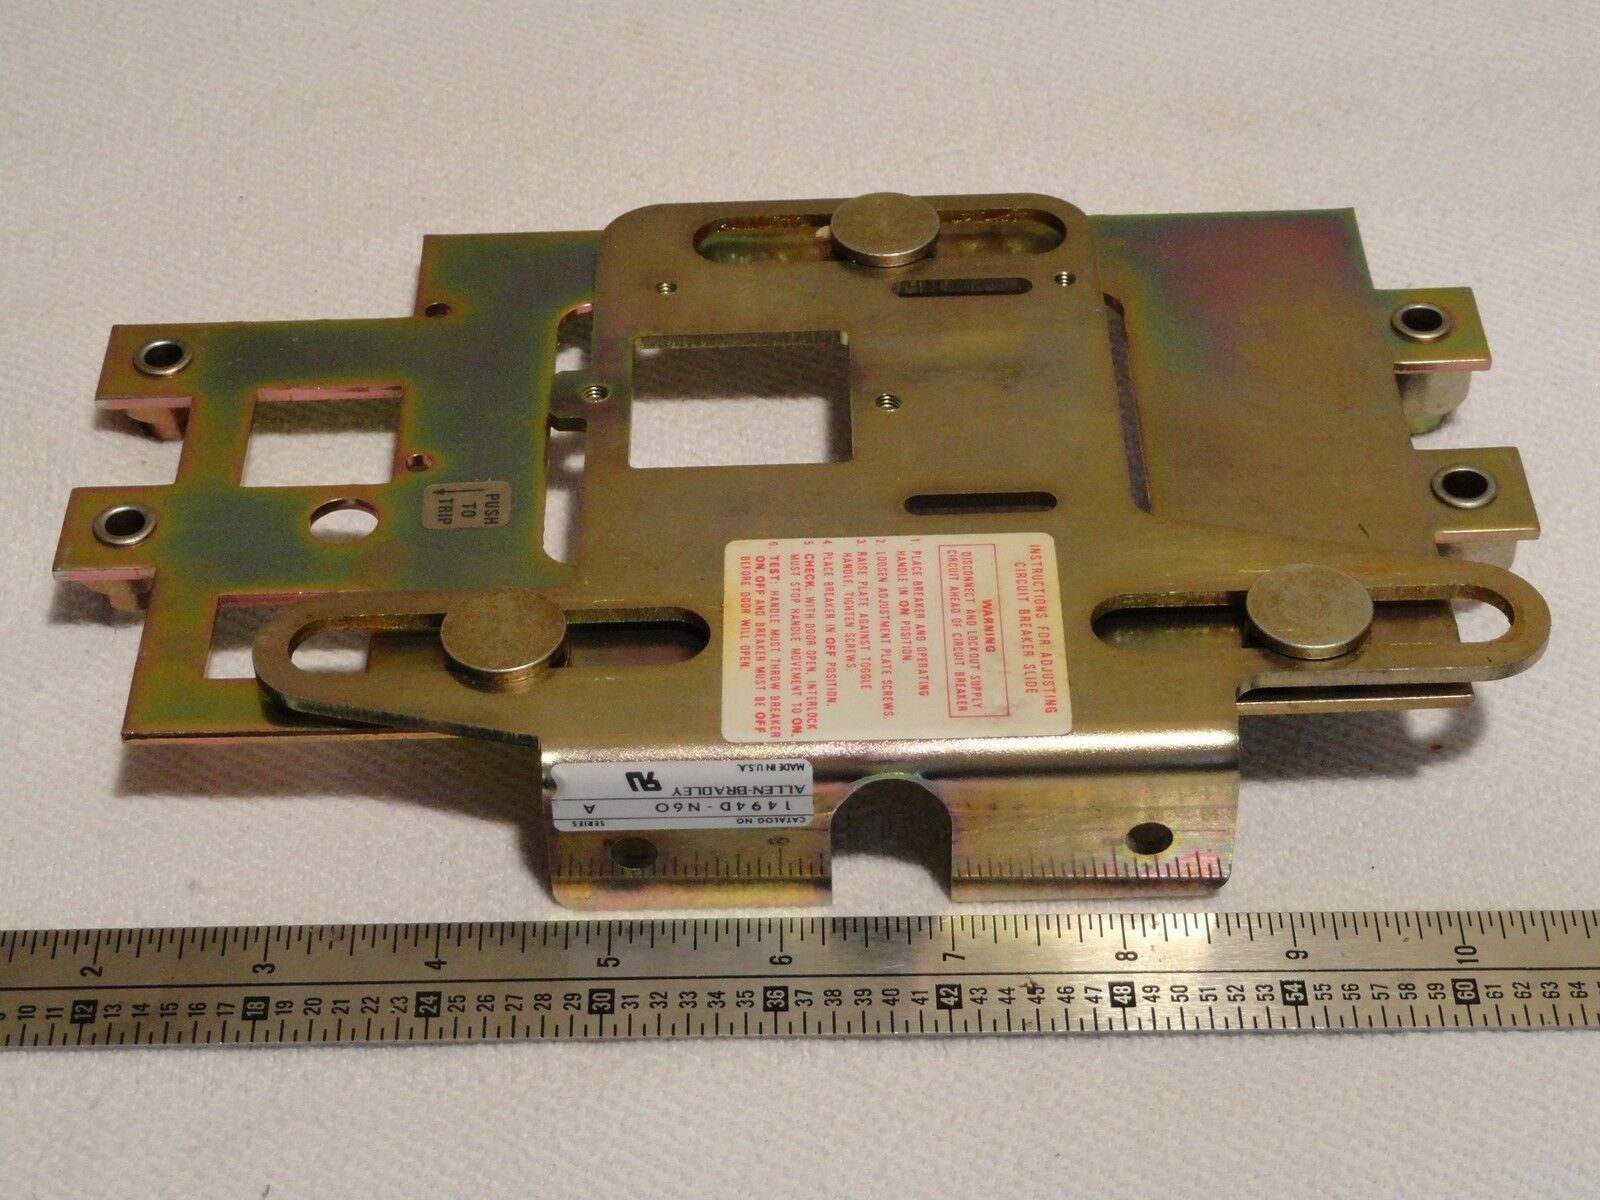 Allen Bradley Slide Mechanism For Circuit Breaker 1494d N60 Ebay Breakers In The Off Position Without Locking Out An Entire Norton Secured Powered By Verisign